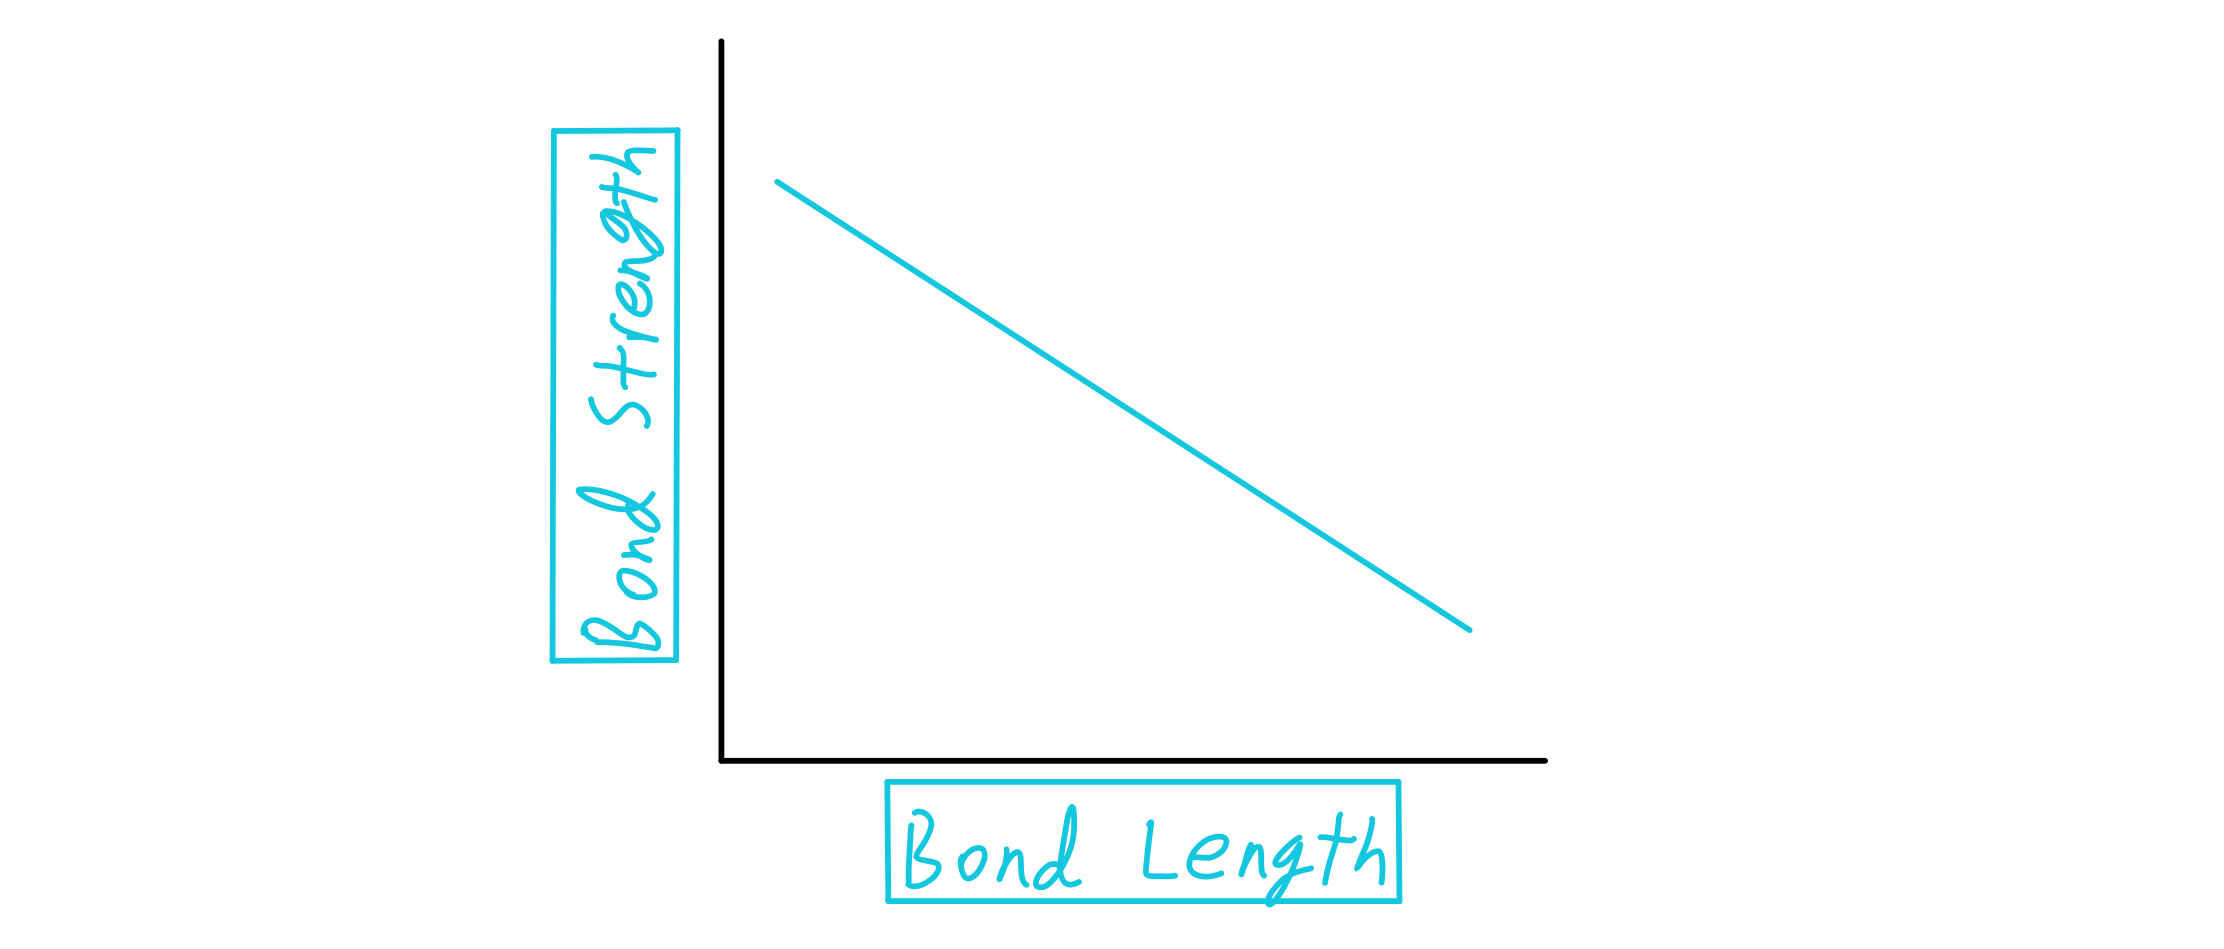 Bond strengths